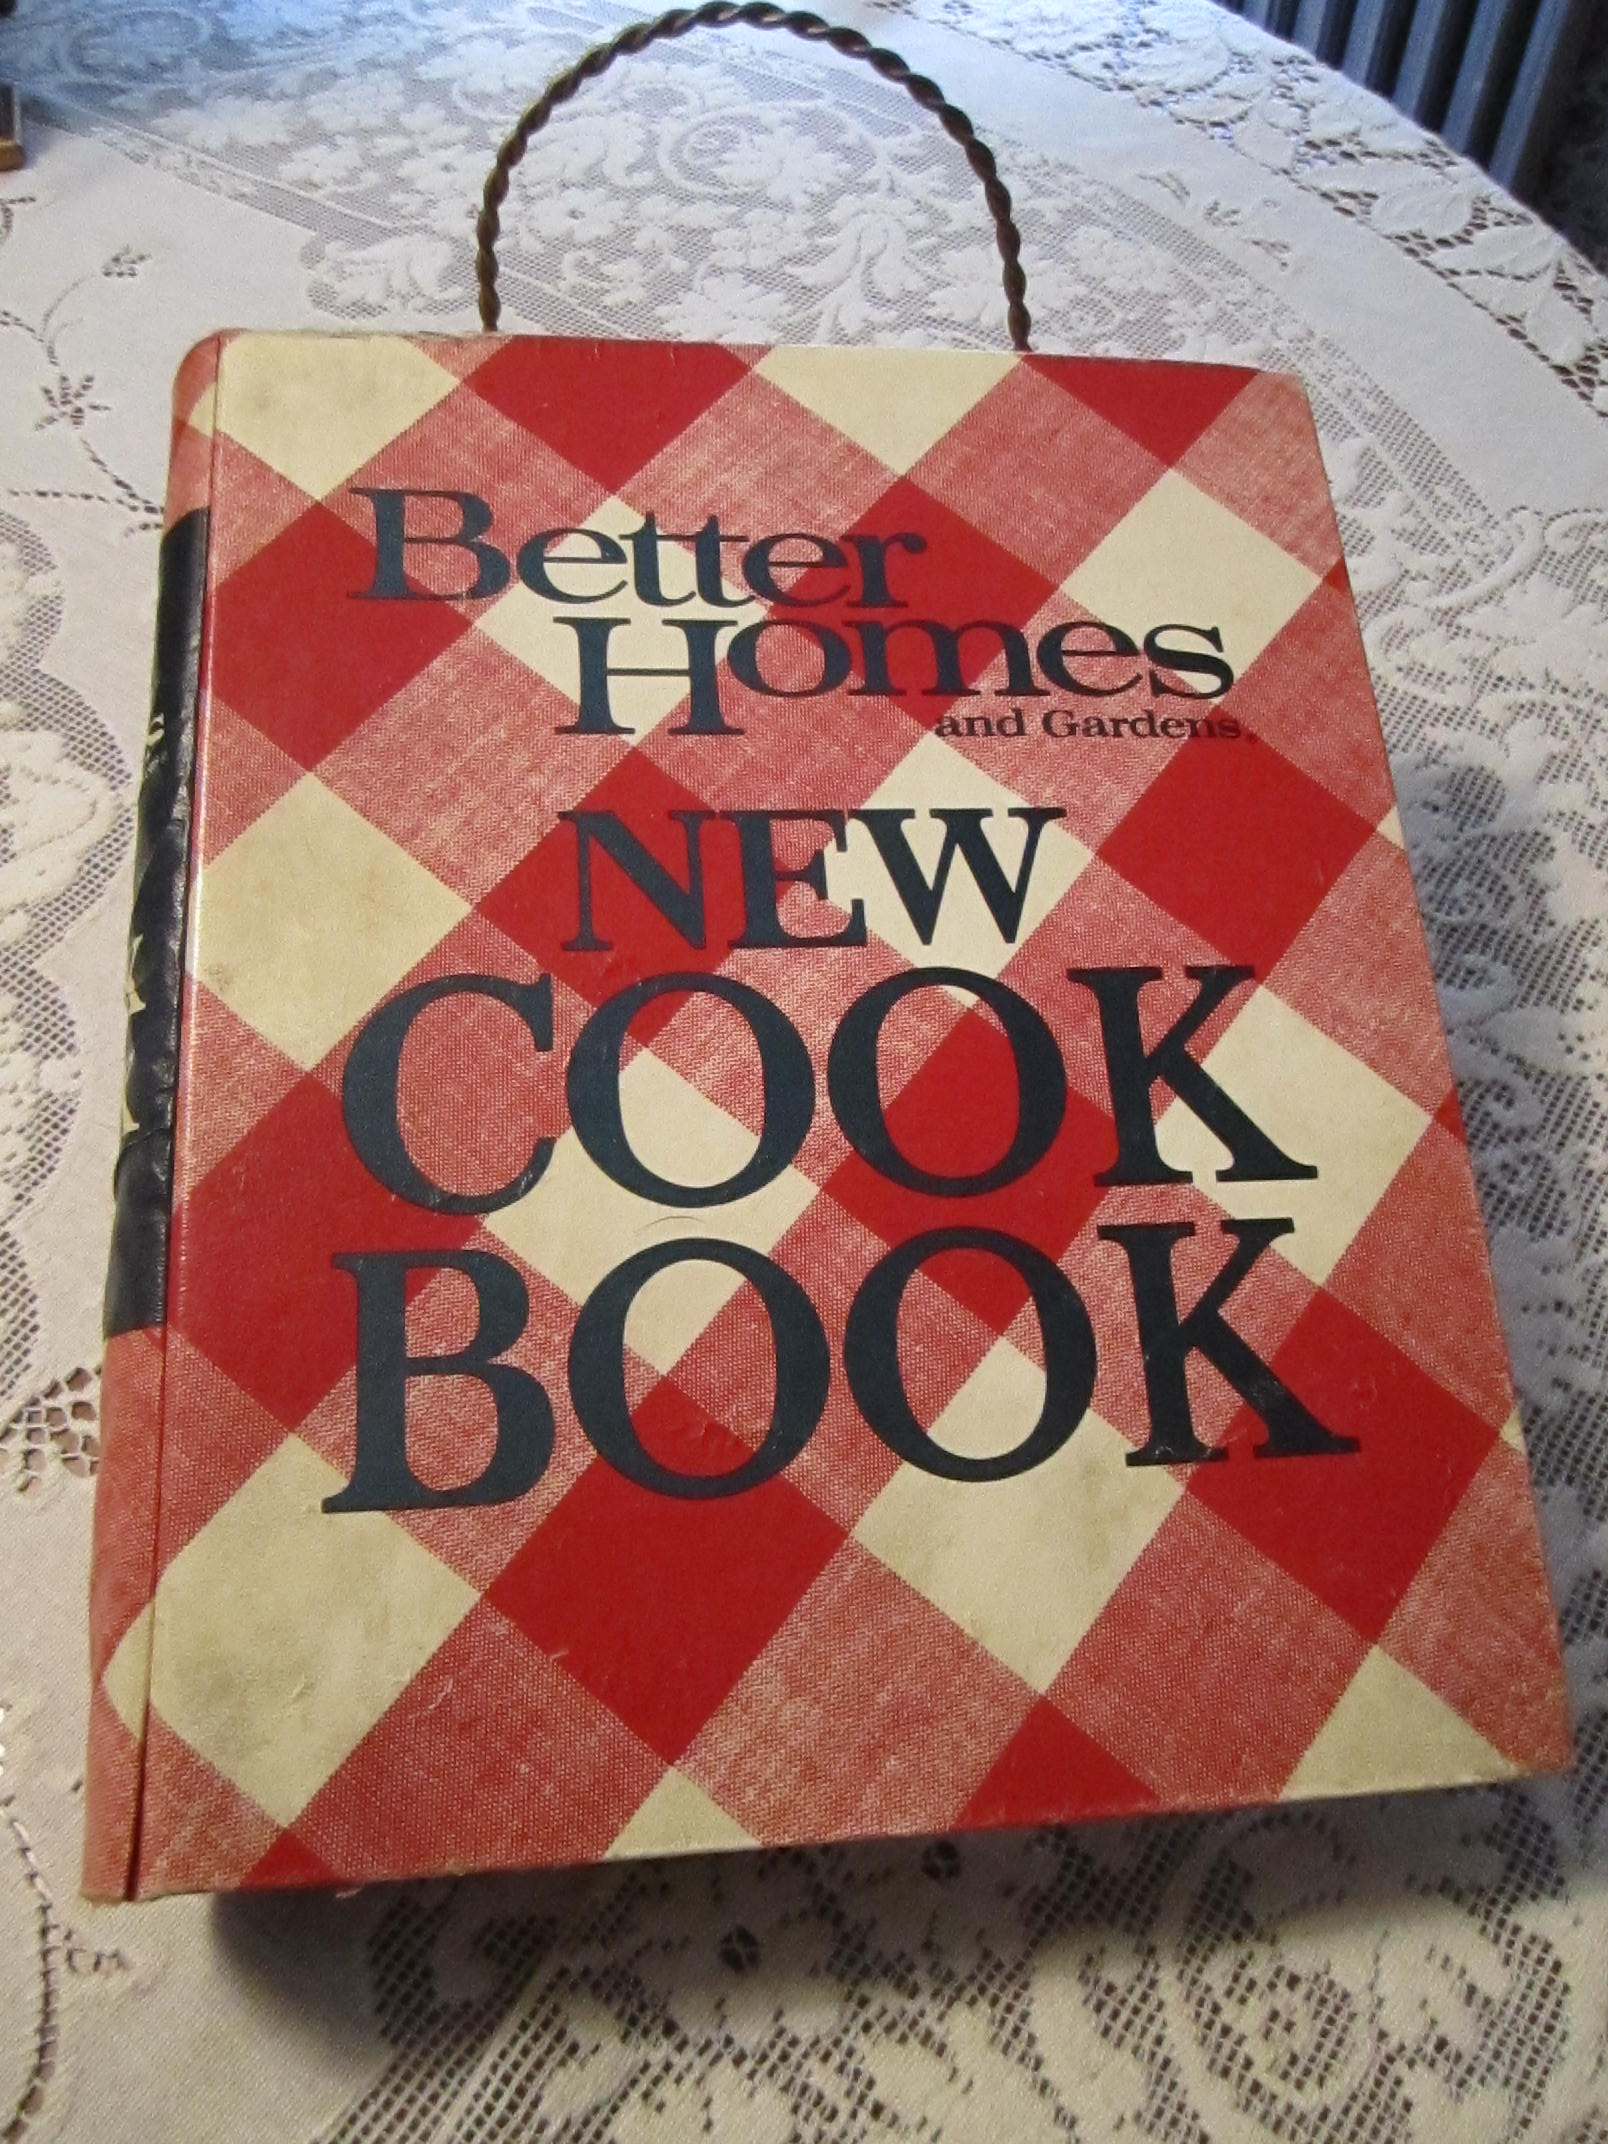 133 Vintage Recipe Cards Cookbooks And Finished Treats